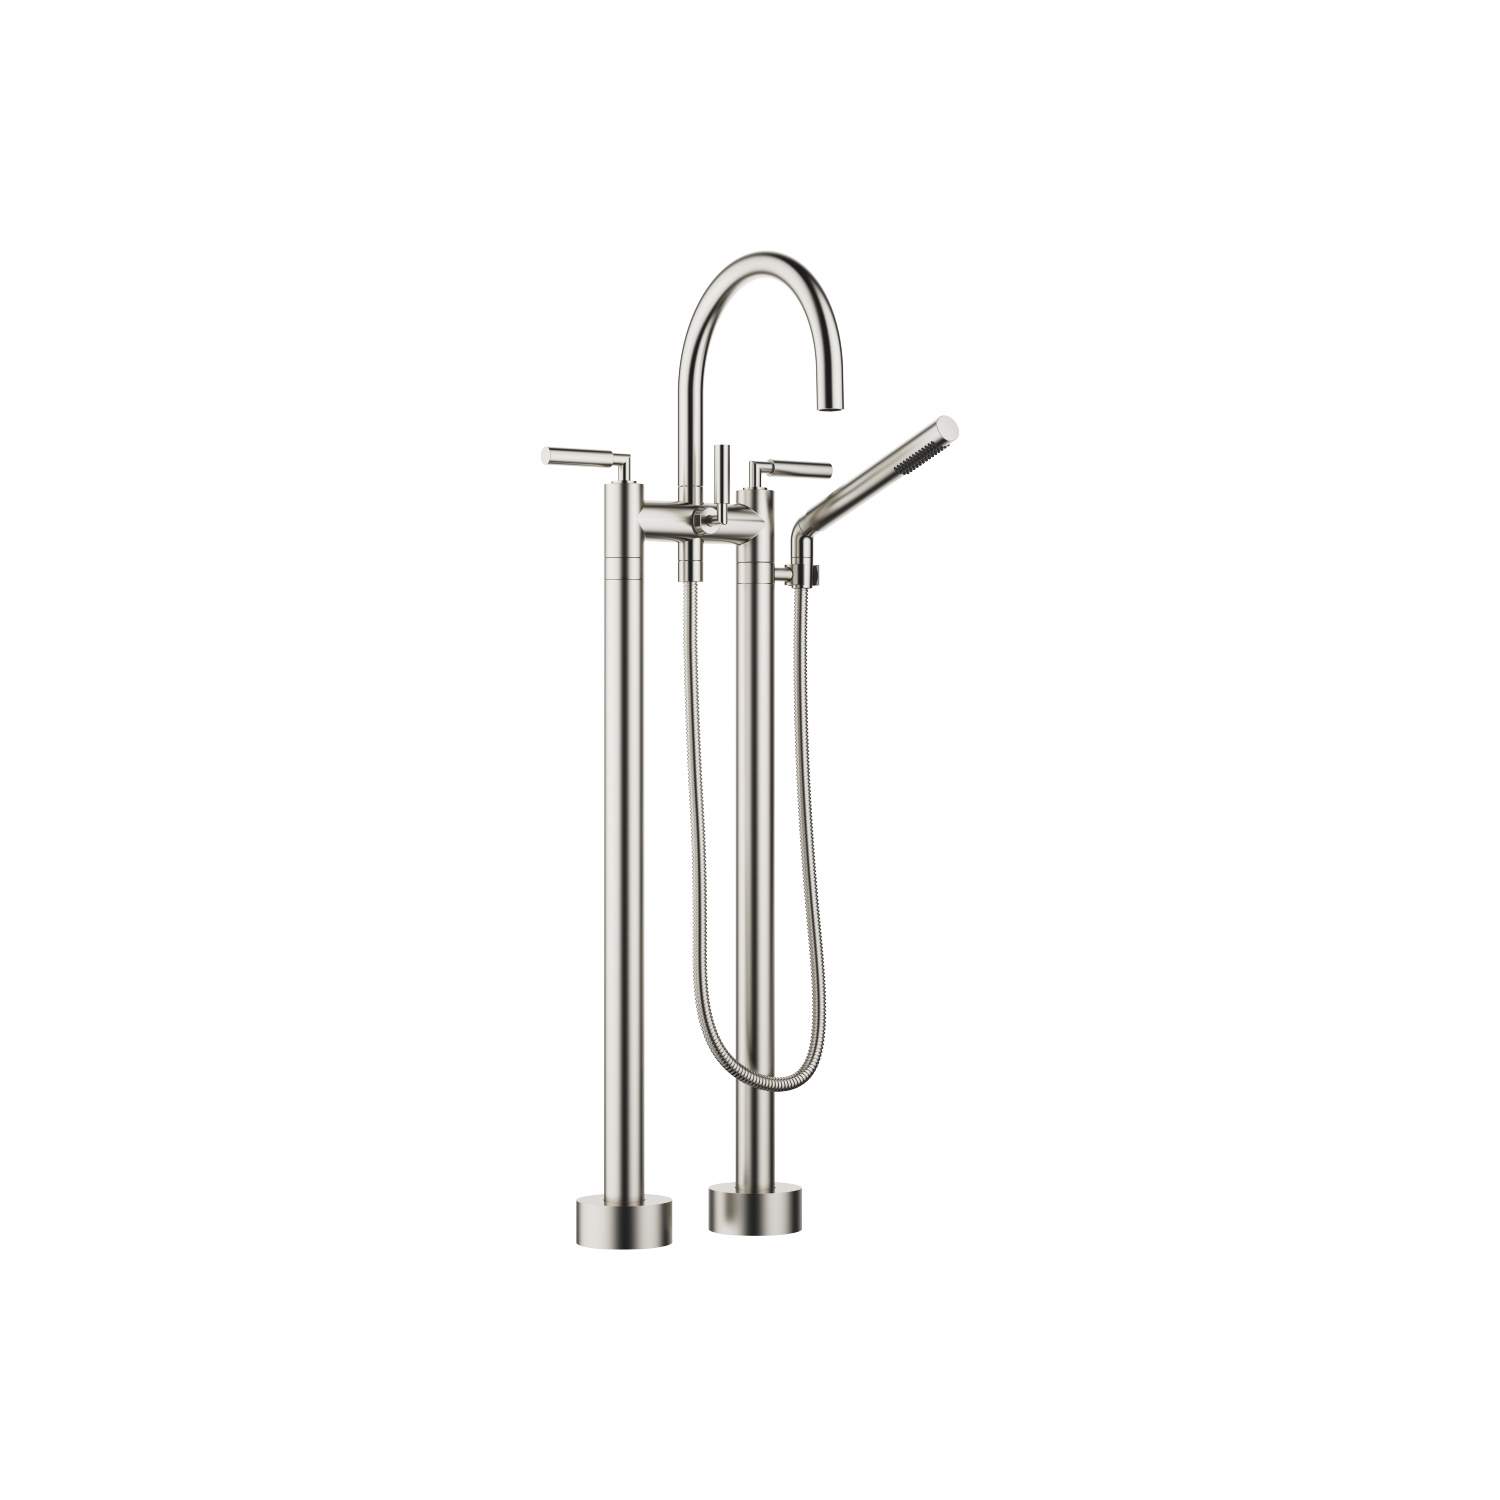 Two-hole tub mixer for freestanding installation with hand shower set - platinum matte